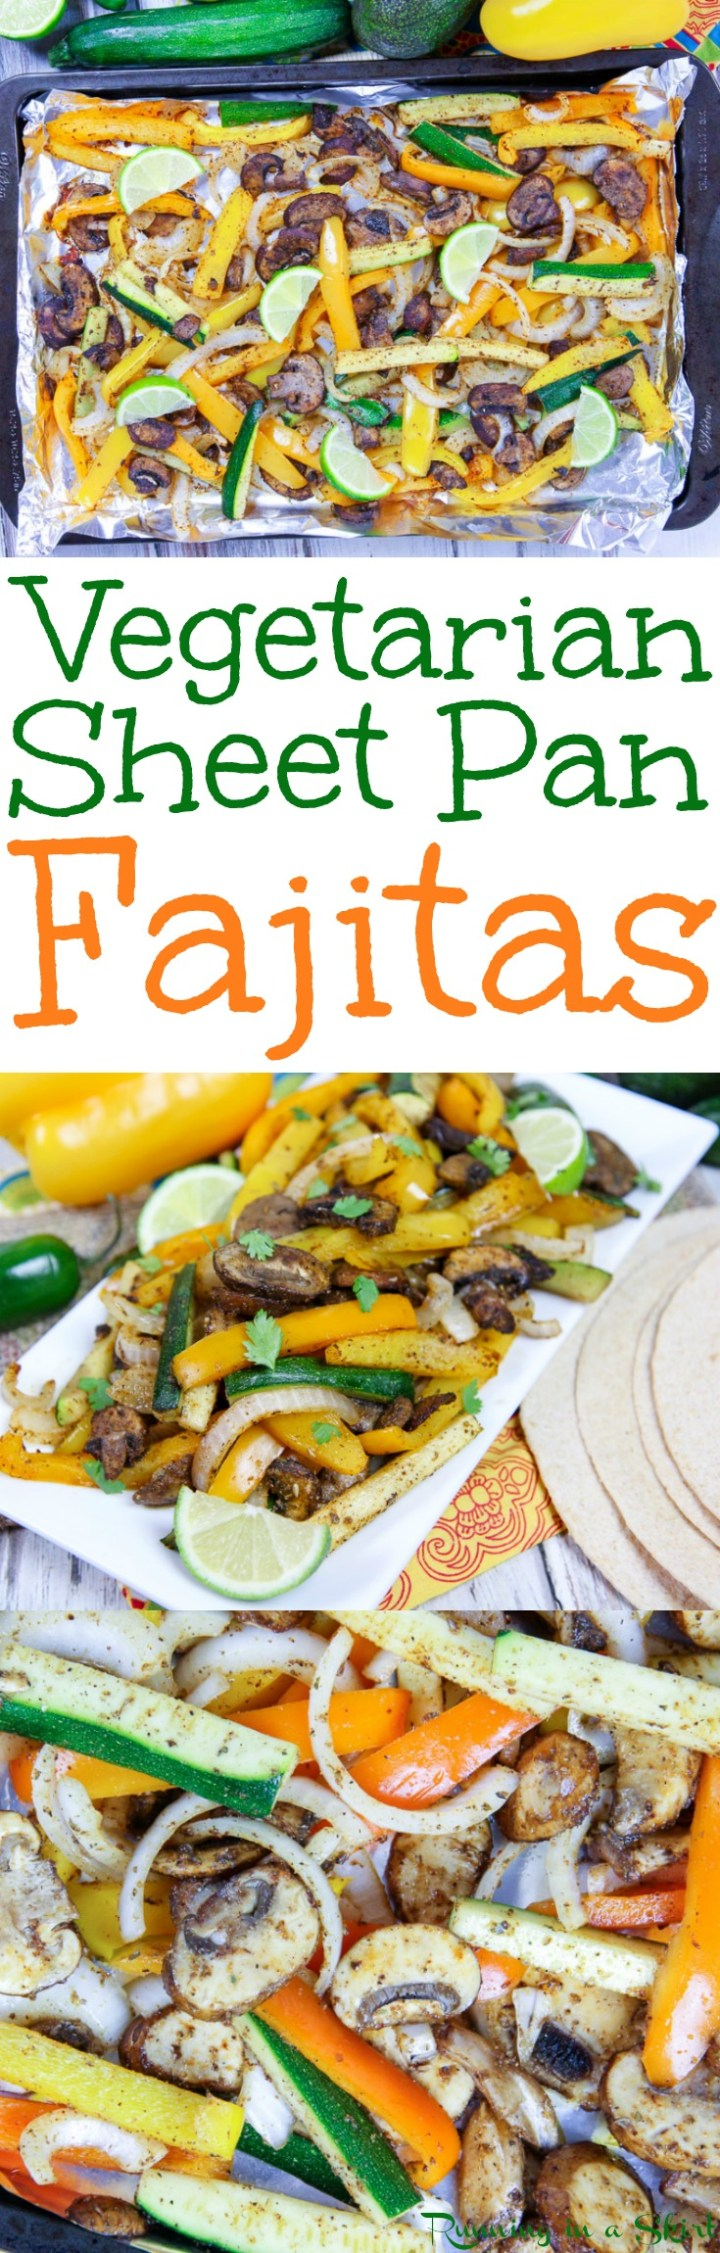 The Best Vegetarian Sheet Pan Fajitas recipe - 20 minute, easy and healthy veggie fajitas topped with homemade taco seasoning. Uses portobello mushrooms, peppers, onions and zucchini. Vegan, clean eating, gluten free, paleo and Whole 30 friendly. / Running in a Skirt via @juliewunder